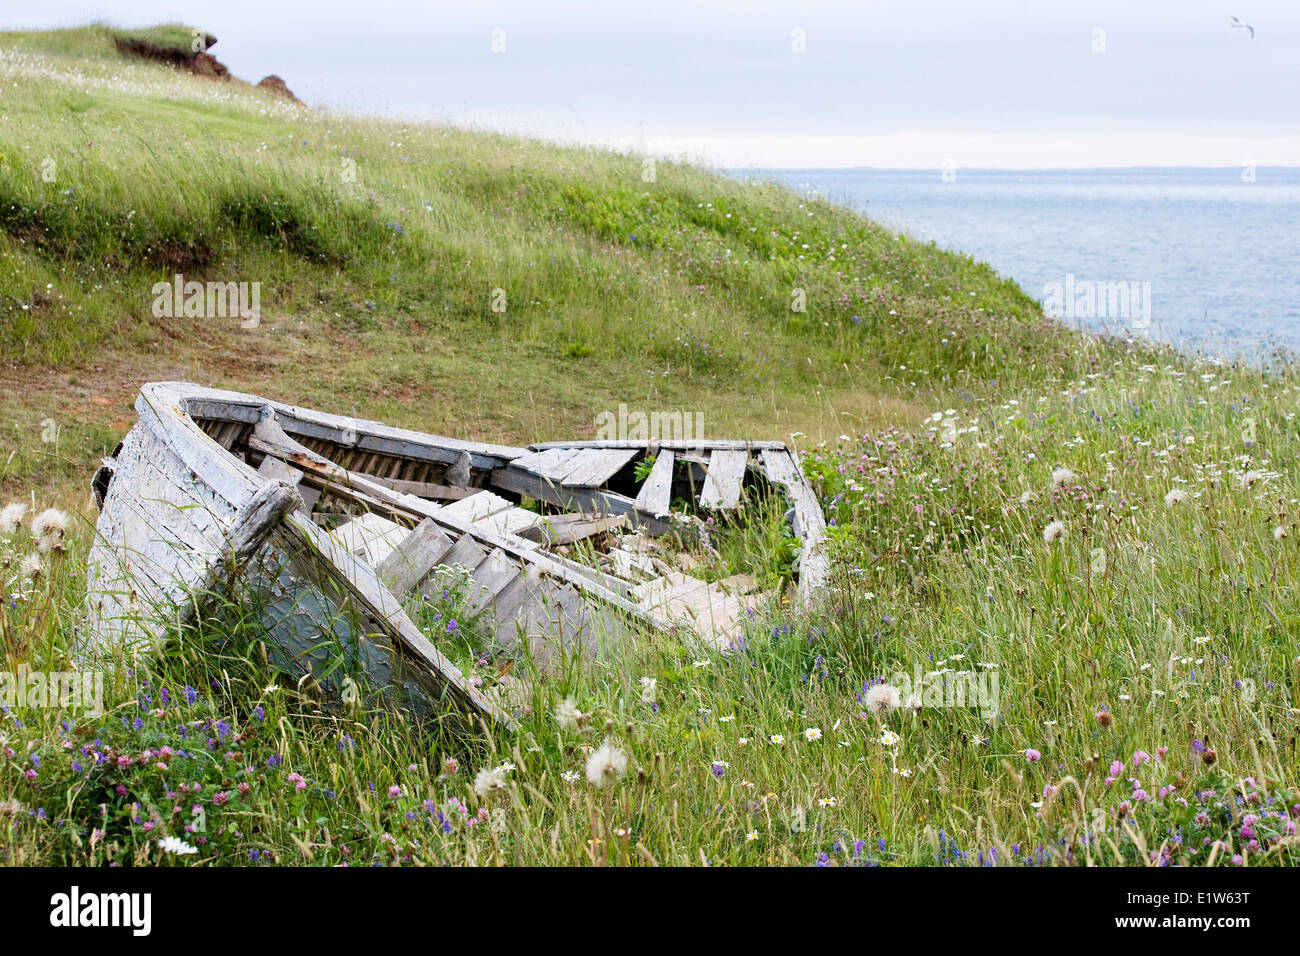 A forgotten dory on the coast of Grosse Île, Magdalen Islands, Quebec.  © Allen McEachern. - Stock Image